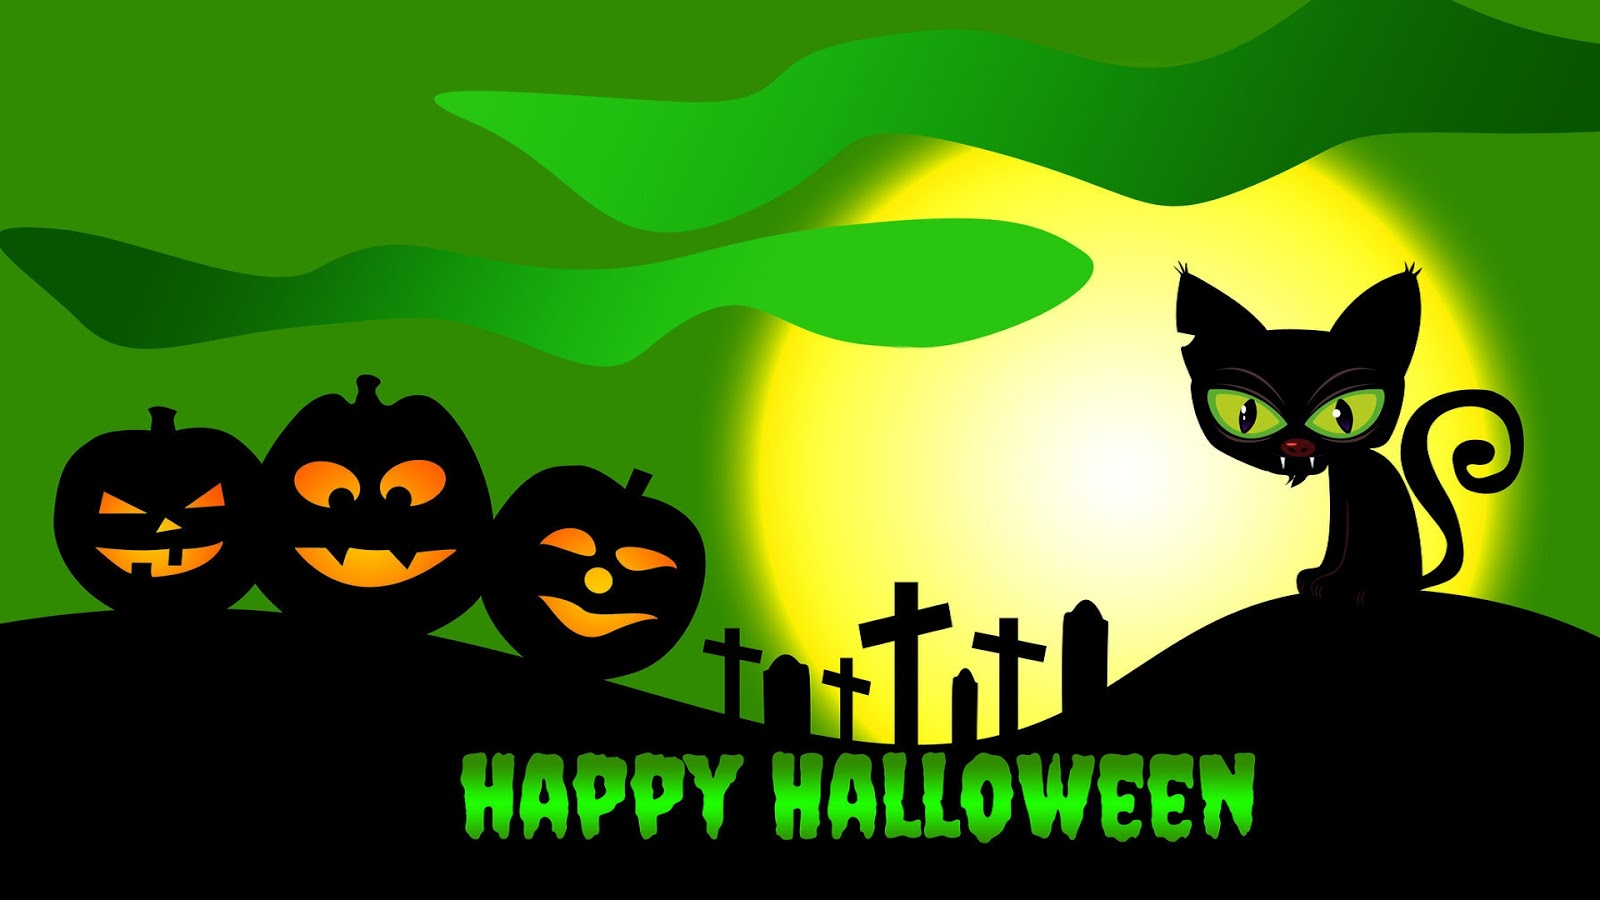 HD Wallpapers of Happy Halloween Day   Halloween Day HD 1600x900